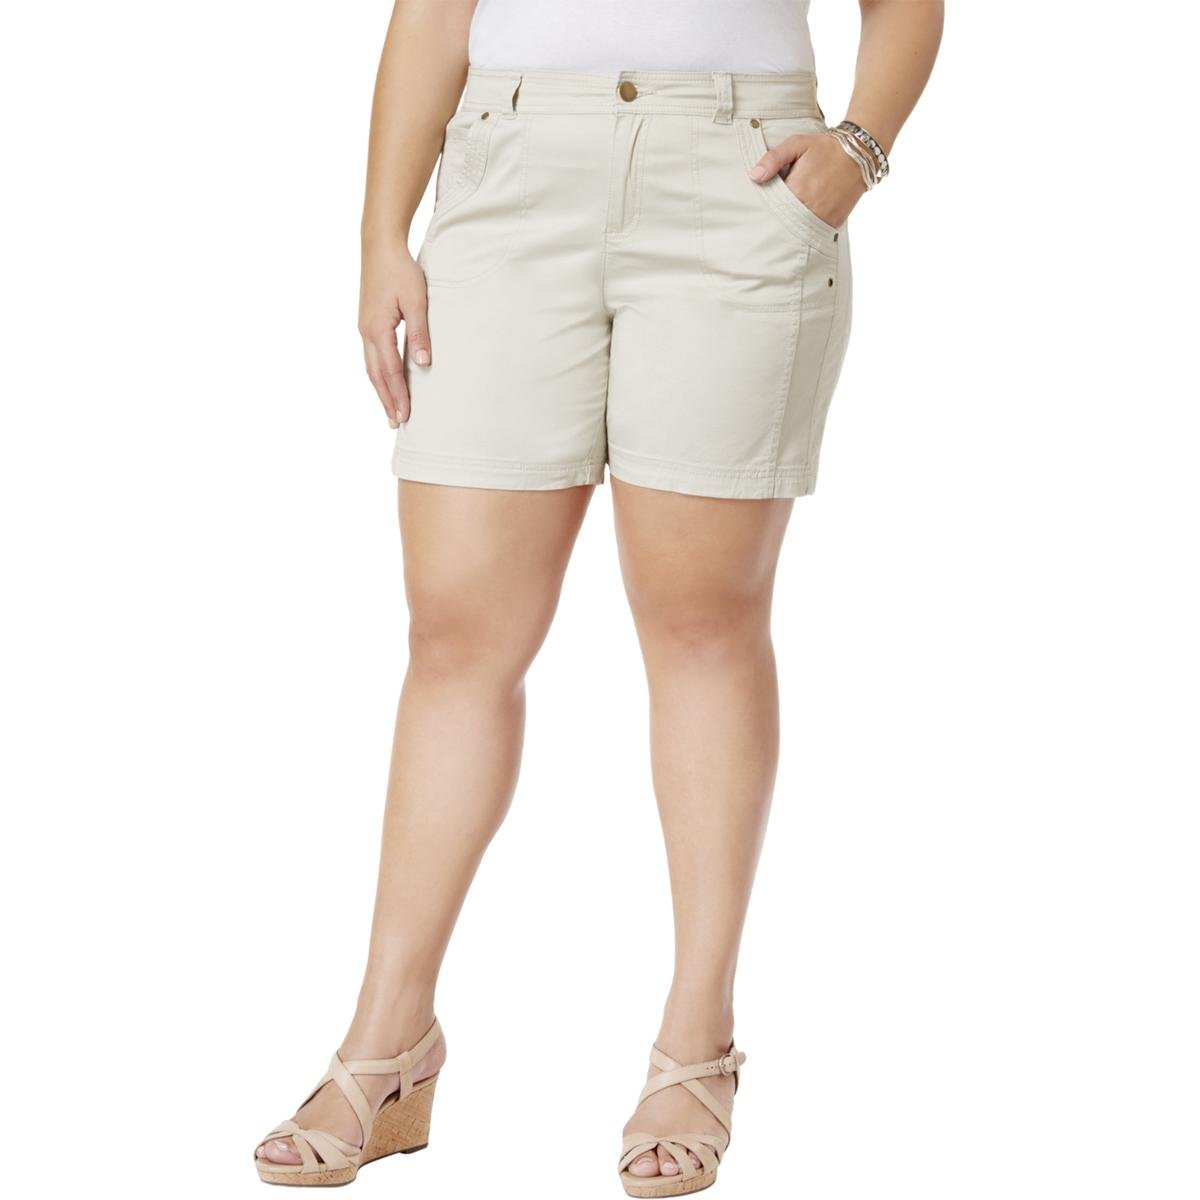 Style & Co. Womens Plus Mid-Rise Solid Casual Shorts Tan 18W by Style & Co.